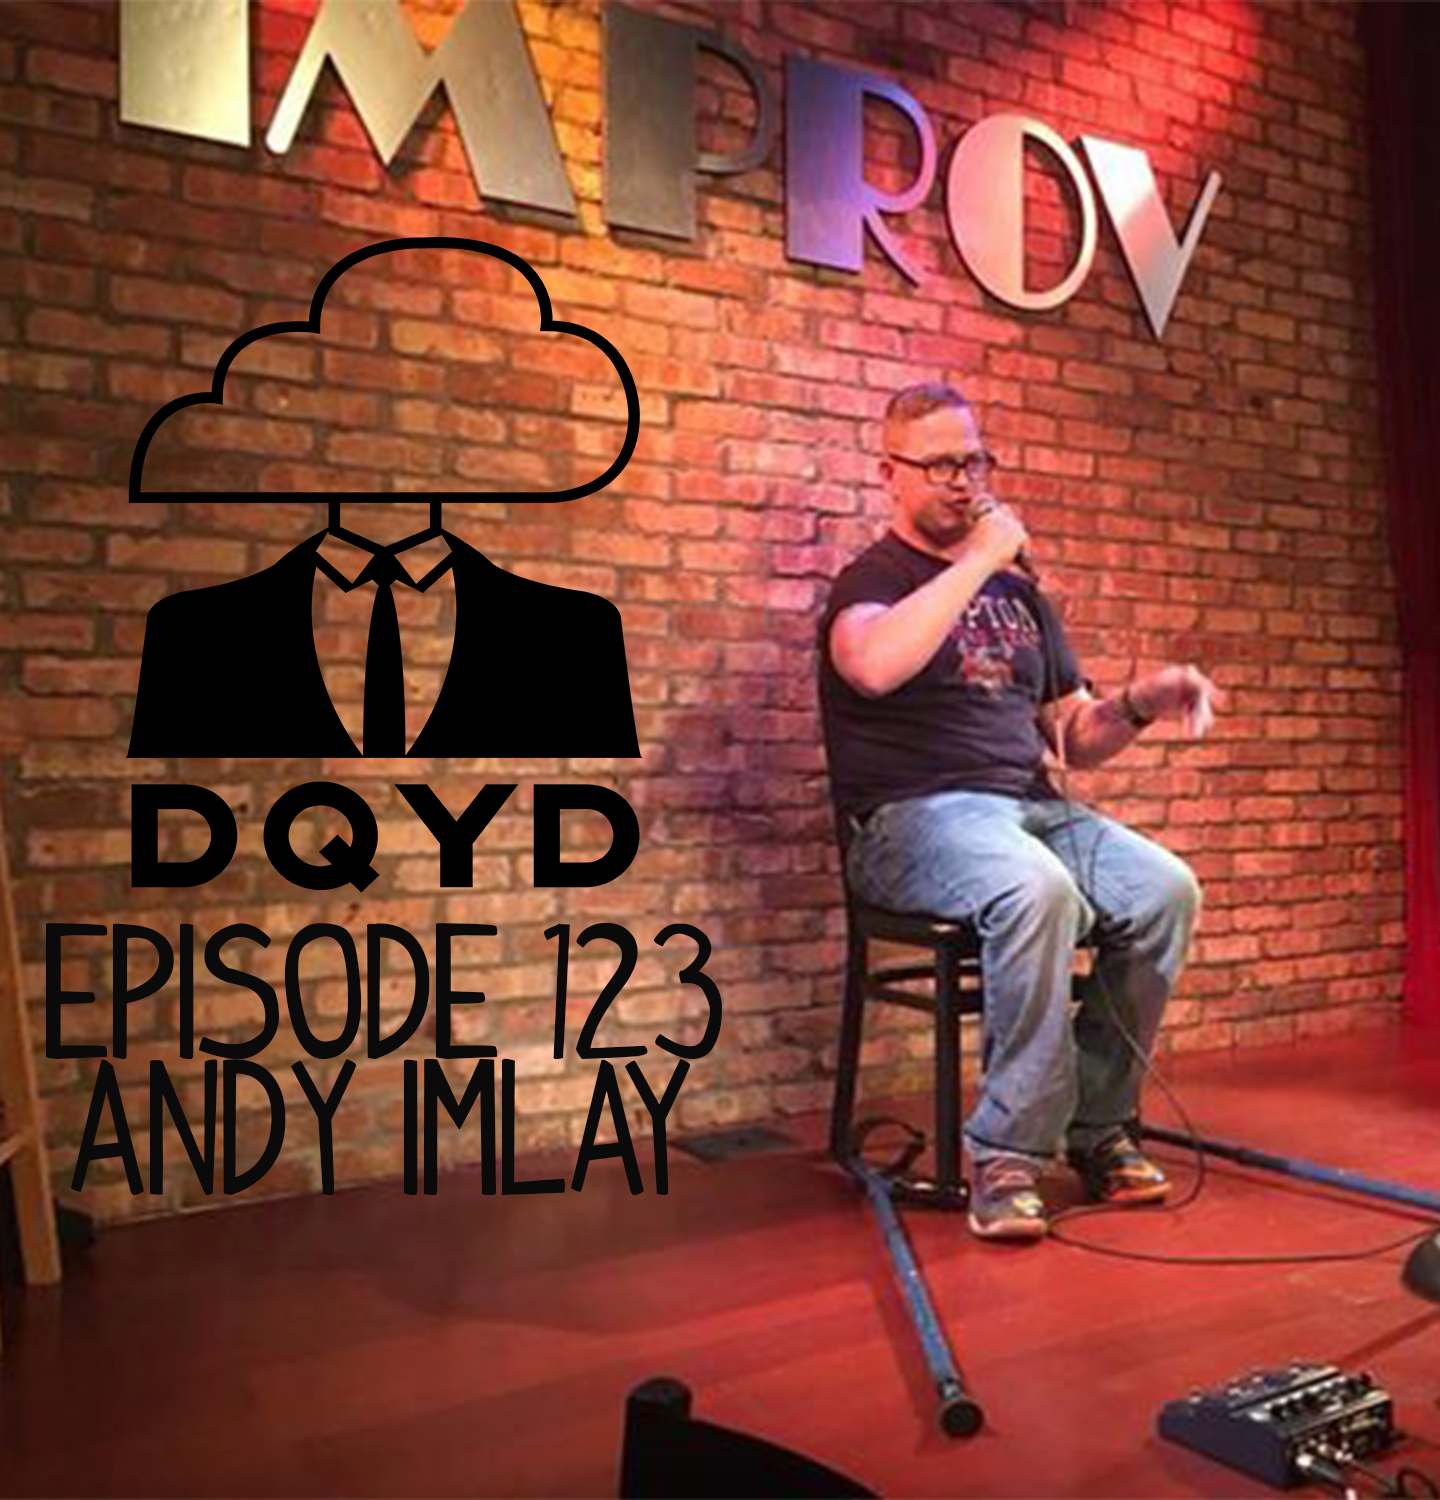 Episode 123 with Comedian: Andy Imlay! The hilarious Andy Imlay takes us down one of the coolest, scariest paths ever, the route to becoming a stand up comedian. We discuss how to the art of writing jokes, how to get over nerves and best practices in navigating politics.